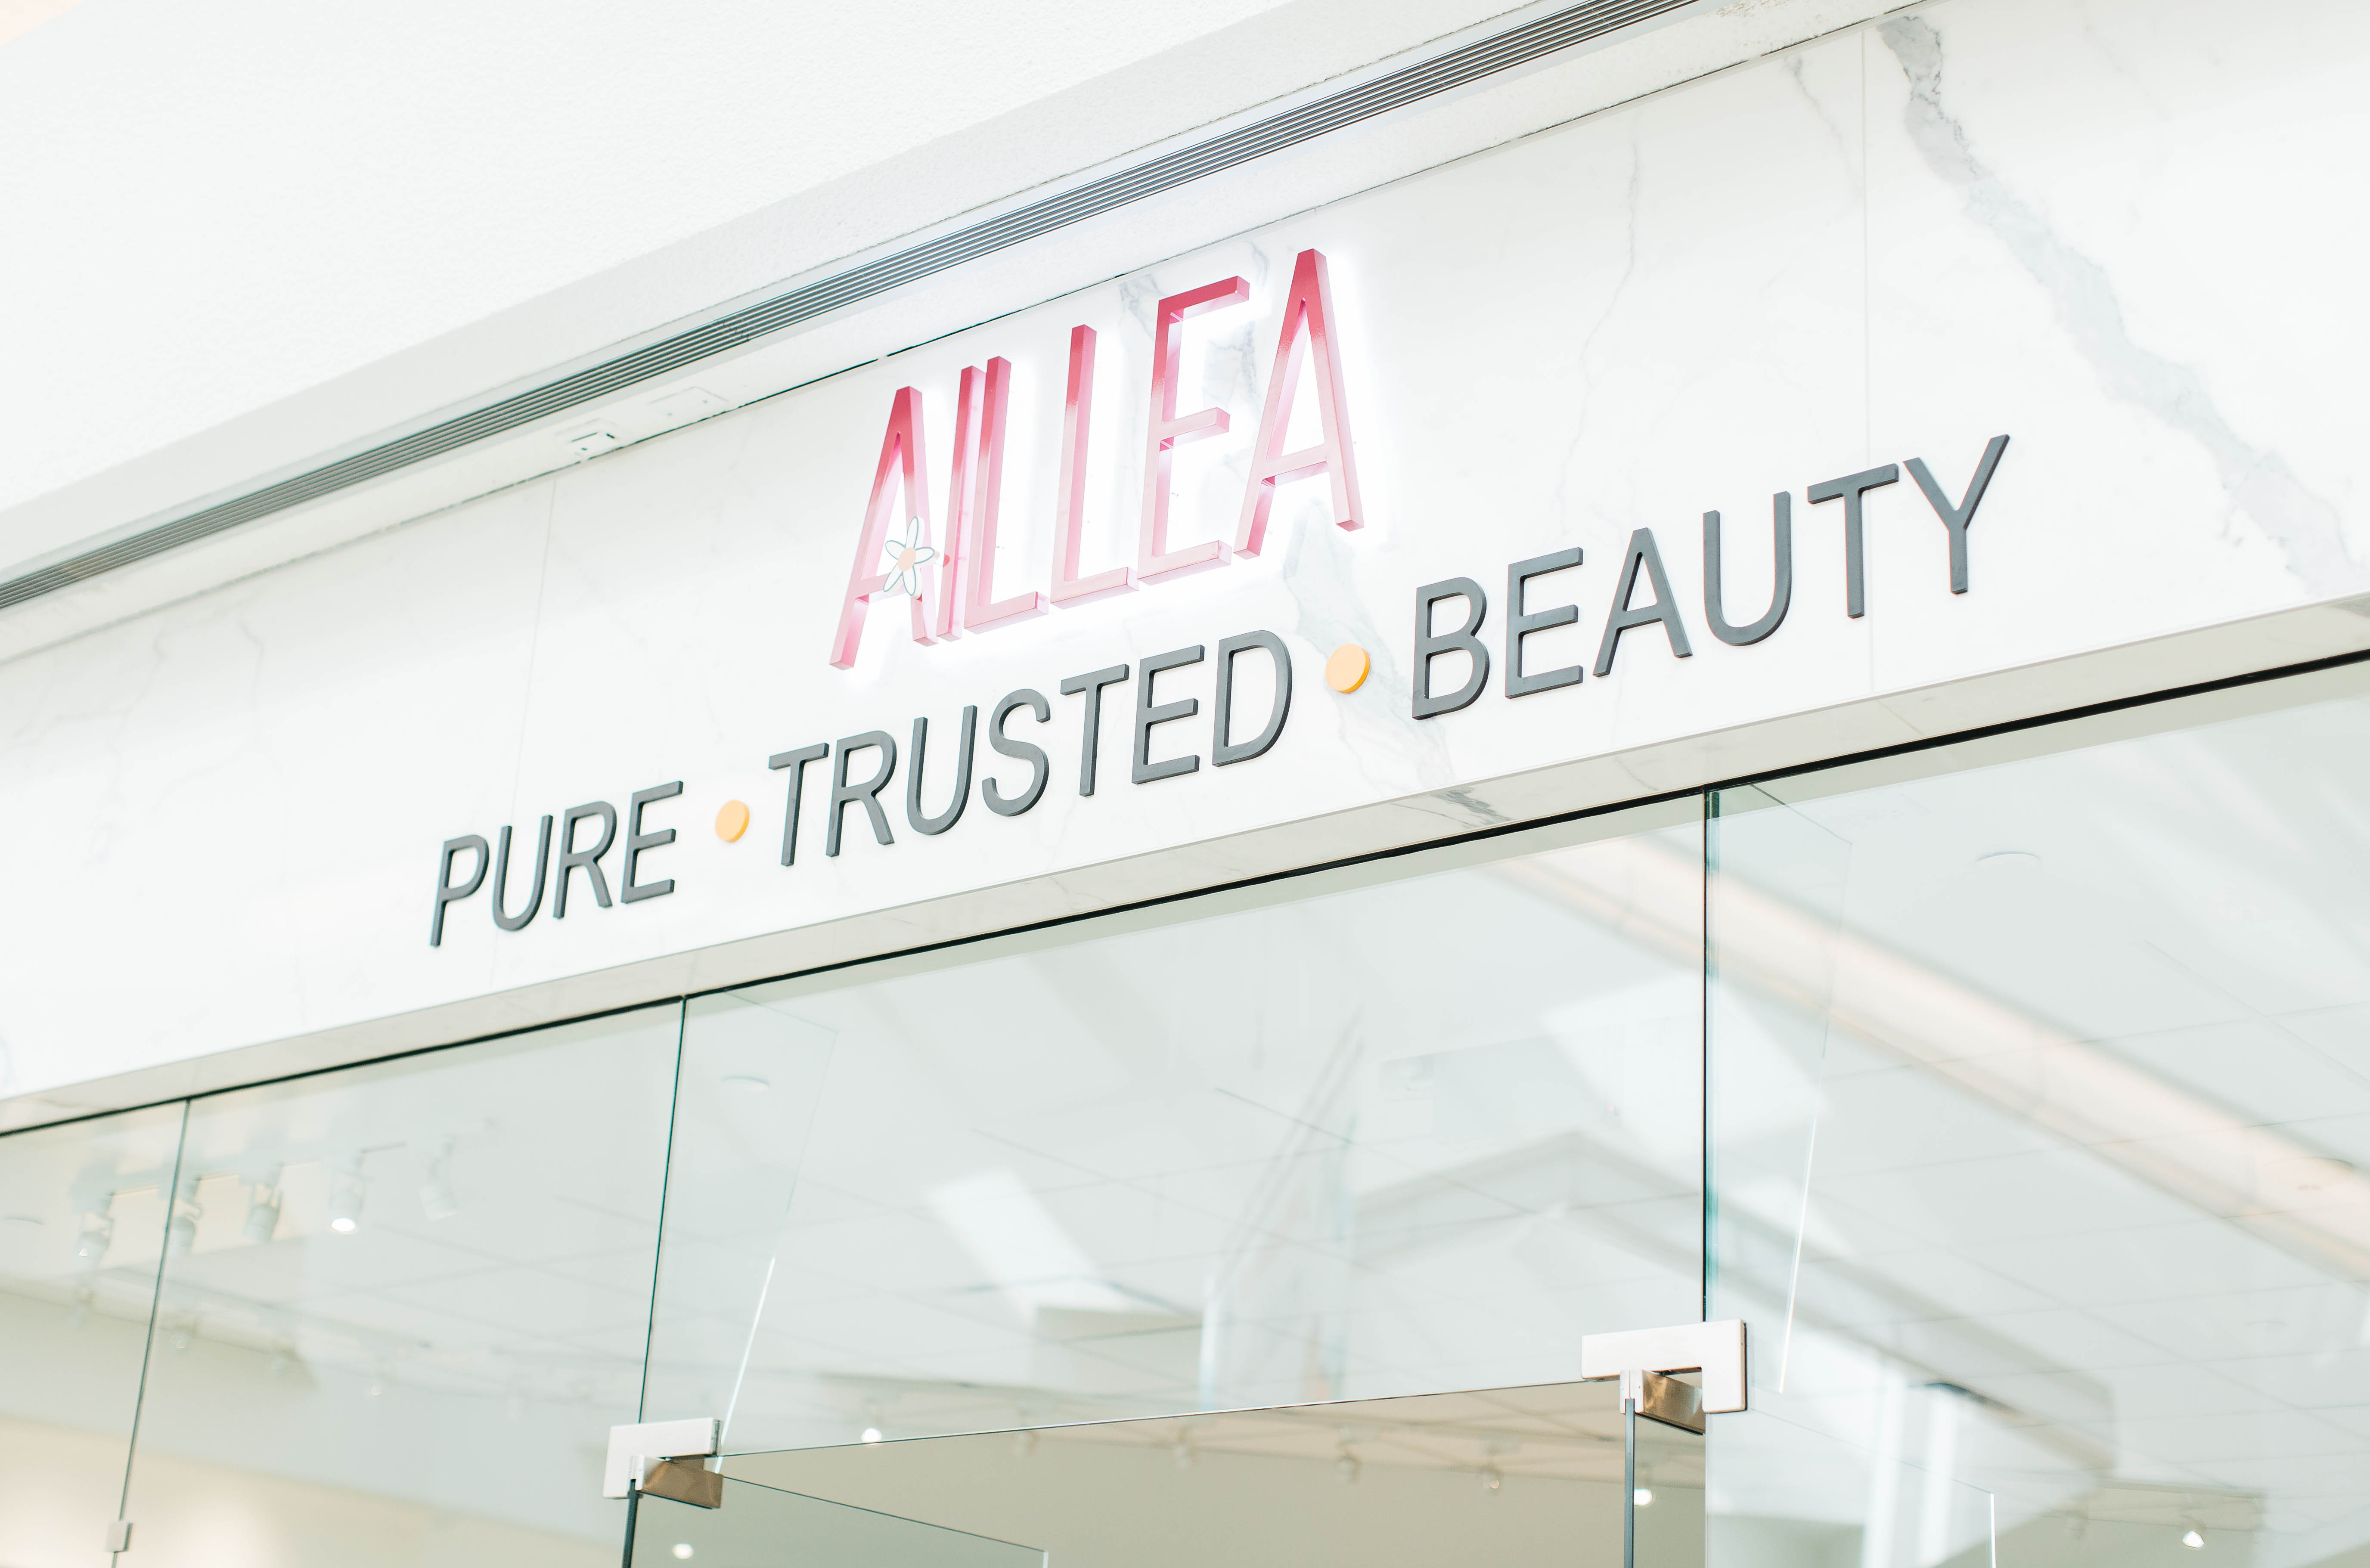 AILlEA is now open in the Cherry Creek Mall.